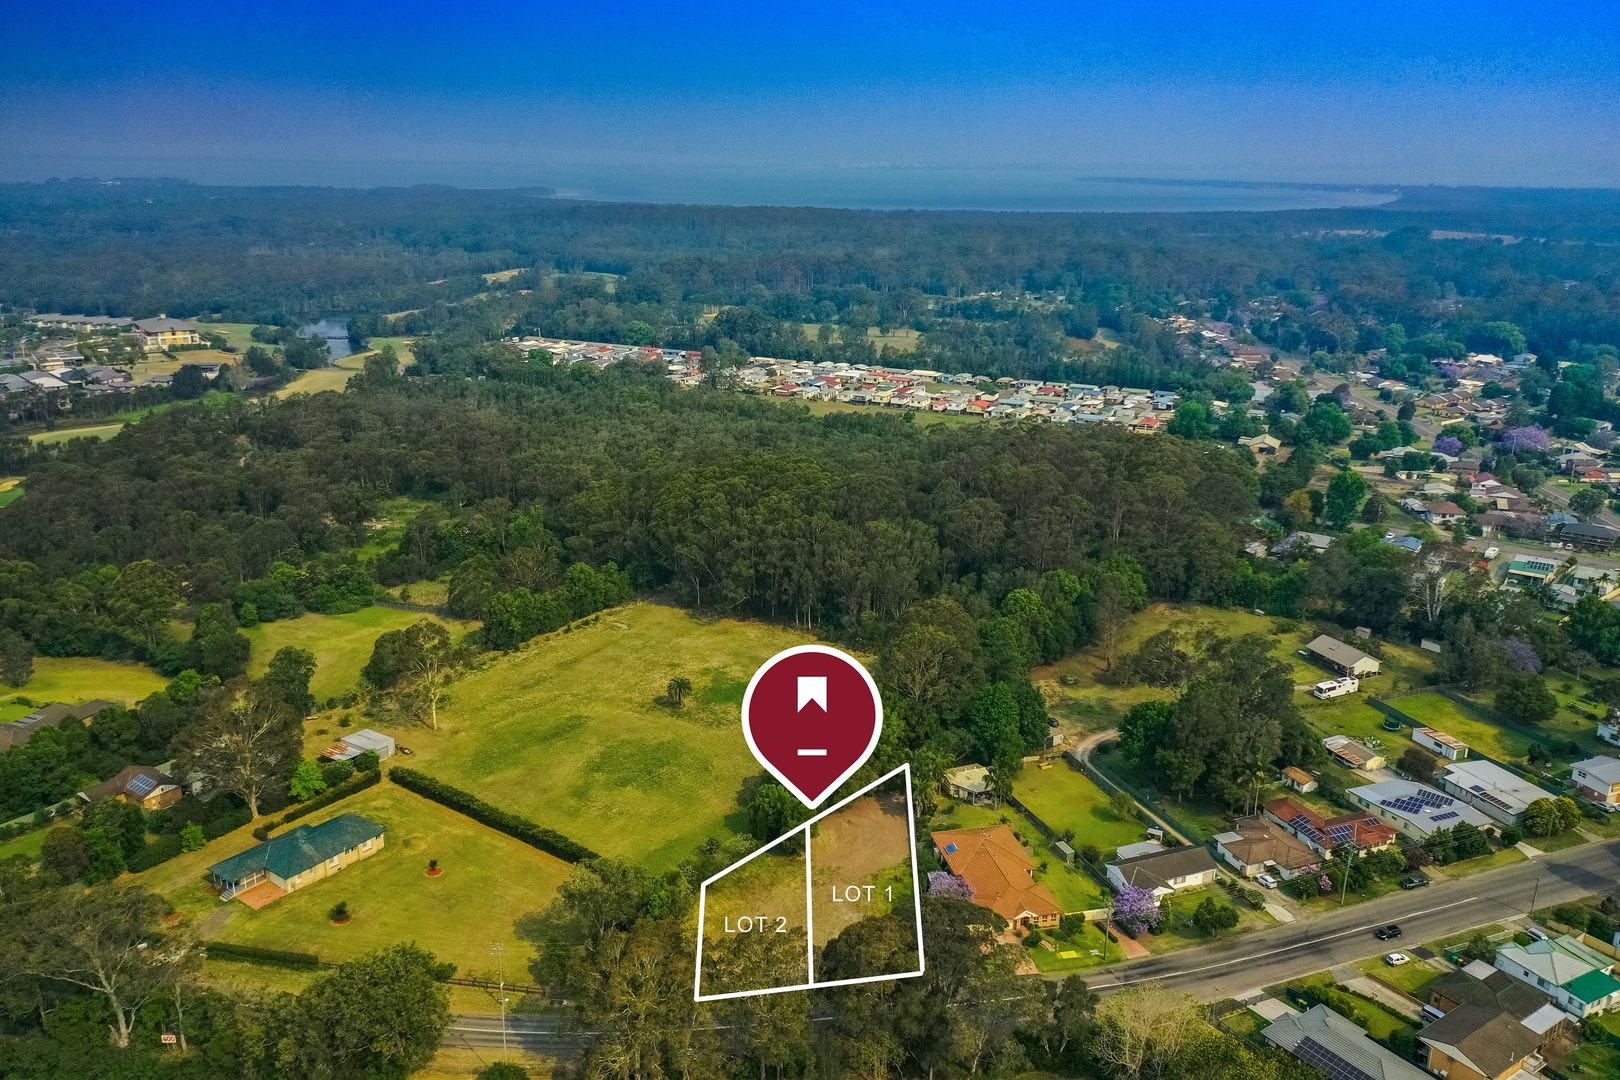 29 Lot 1 Pollock Avenue, Wyong NSW 2259, Image 1